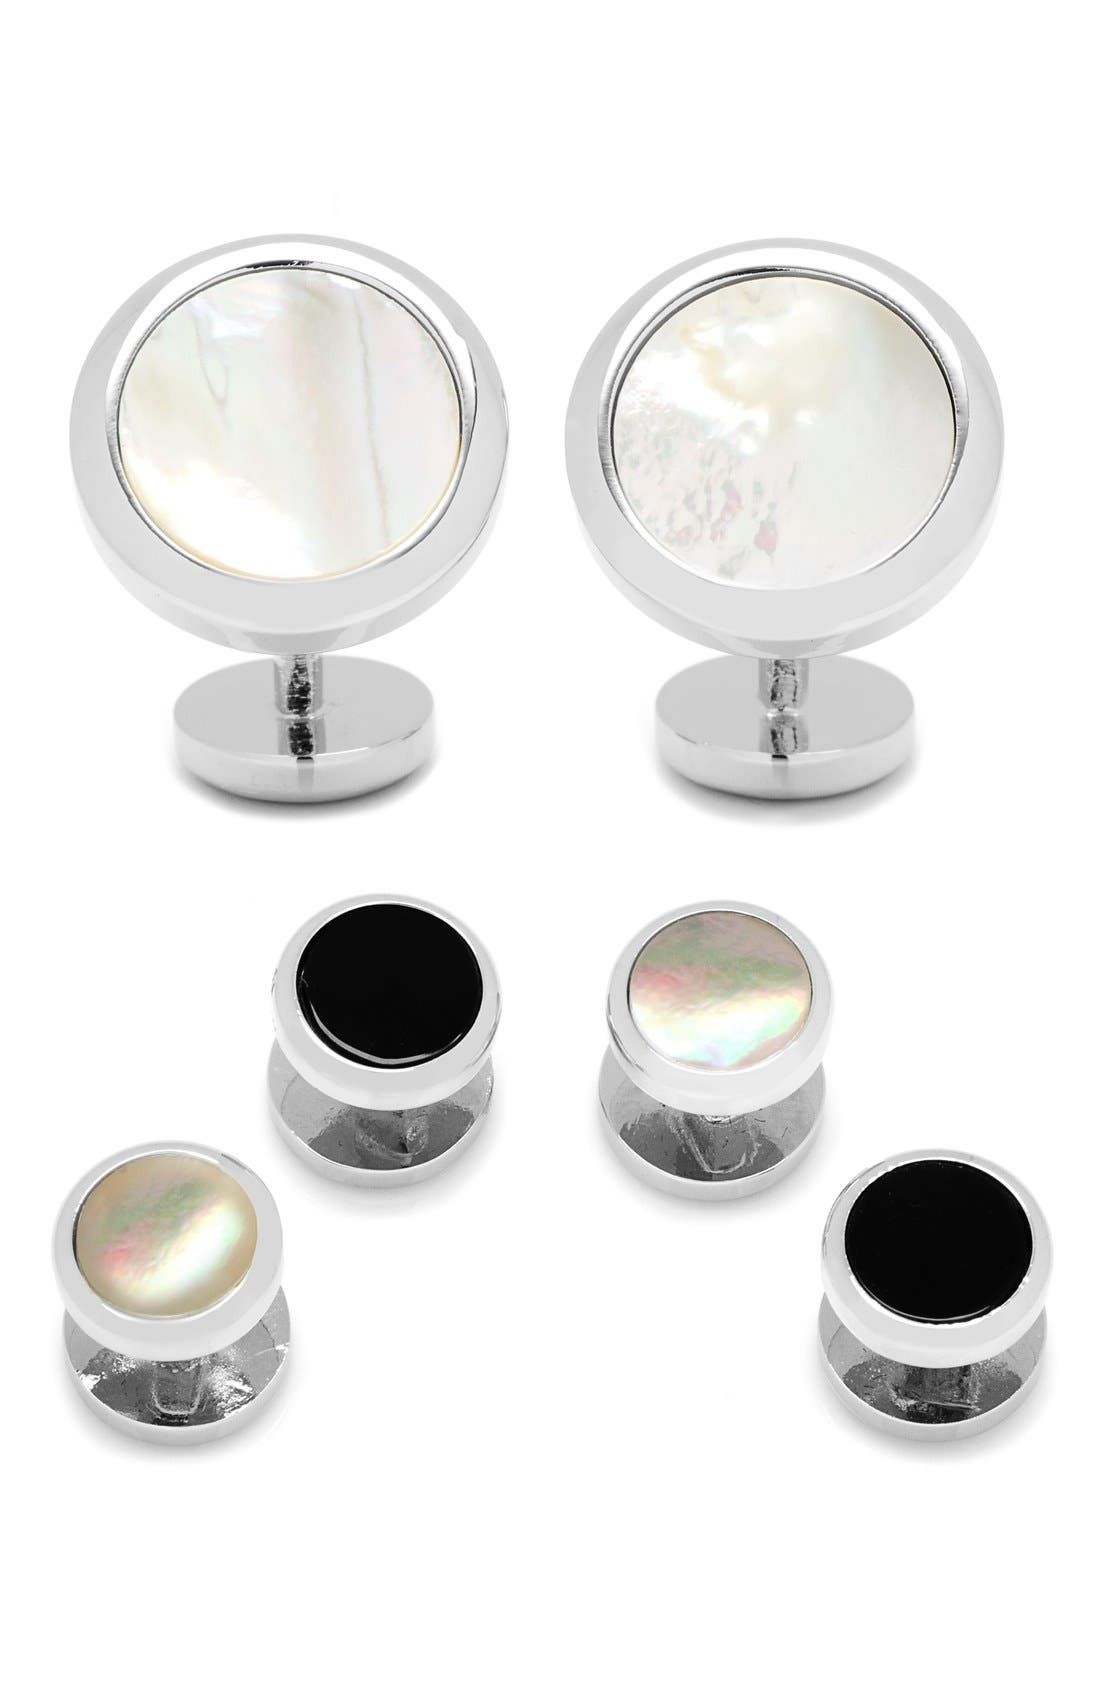 OX AND BULL TRADING CO. Mother-of-Pearl Cuff Links & Shirt Stud Set, Main, color, 100